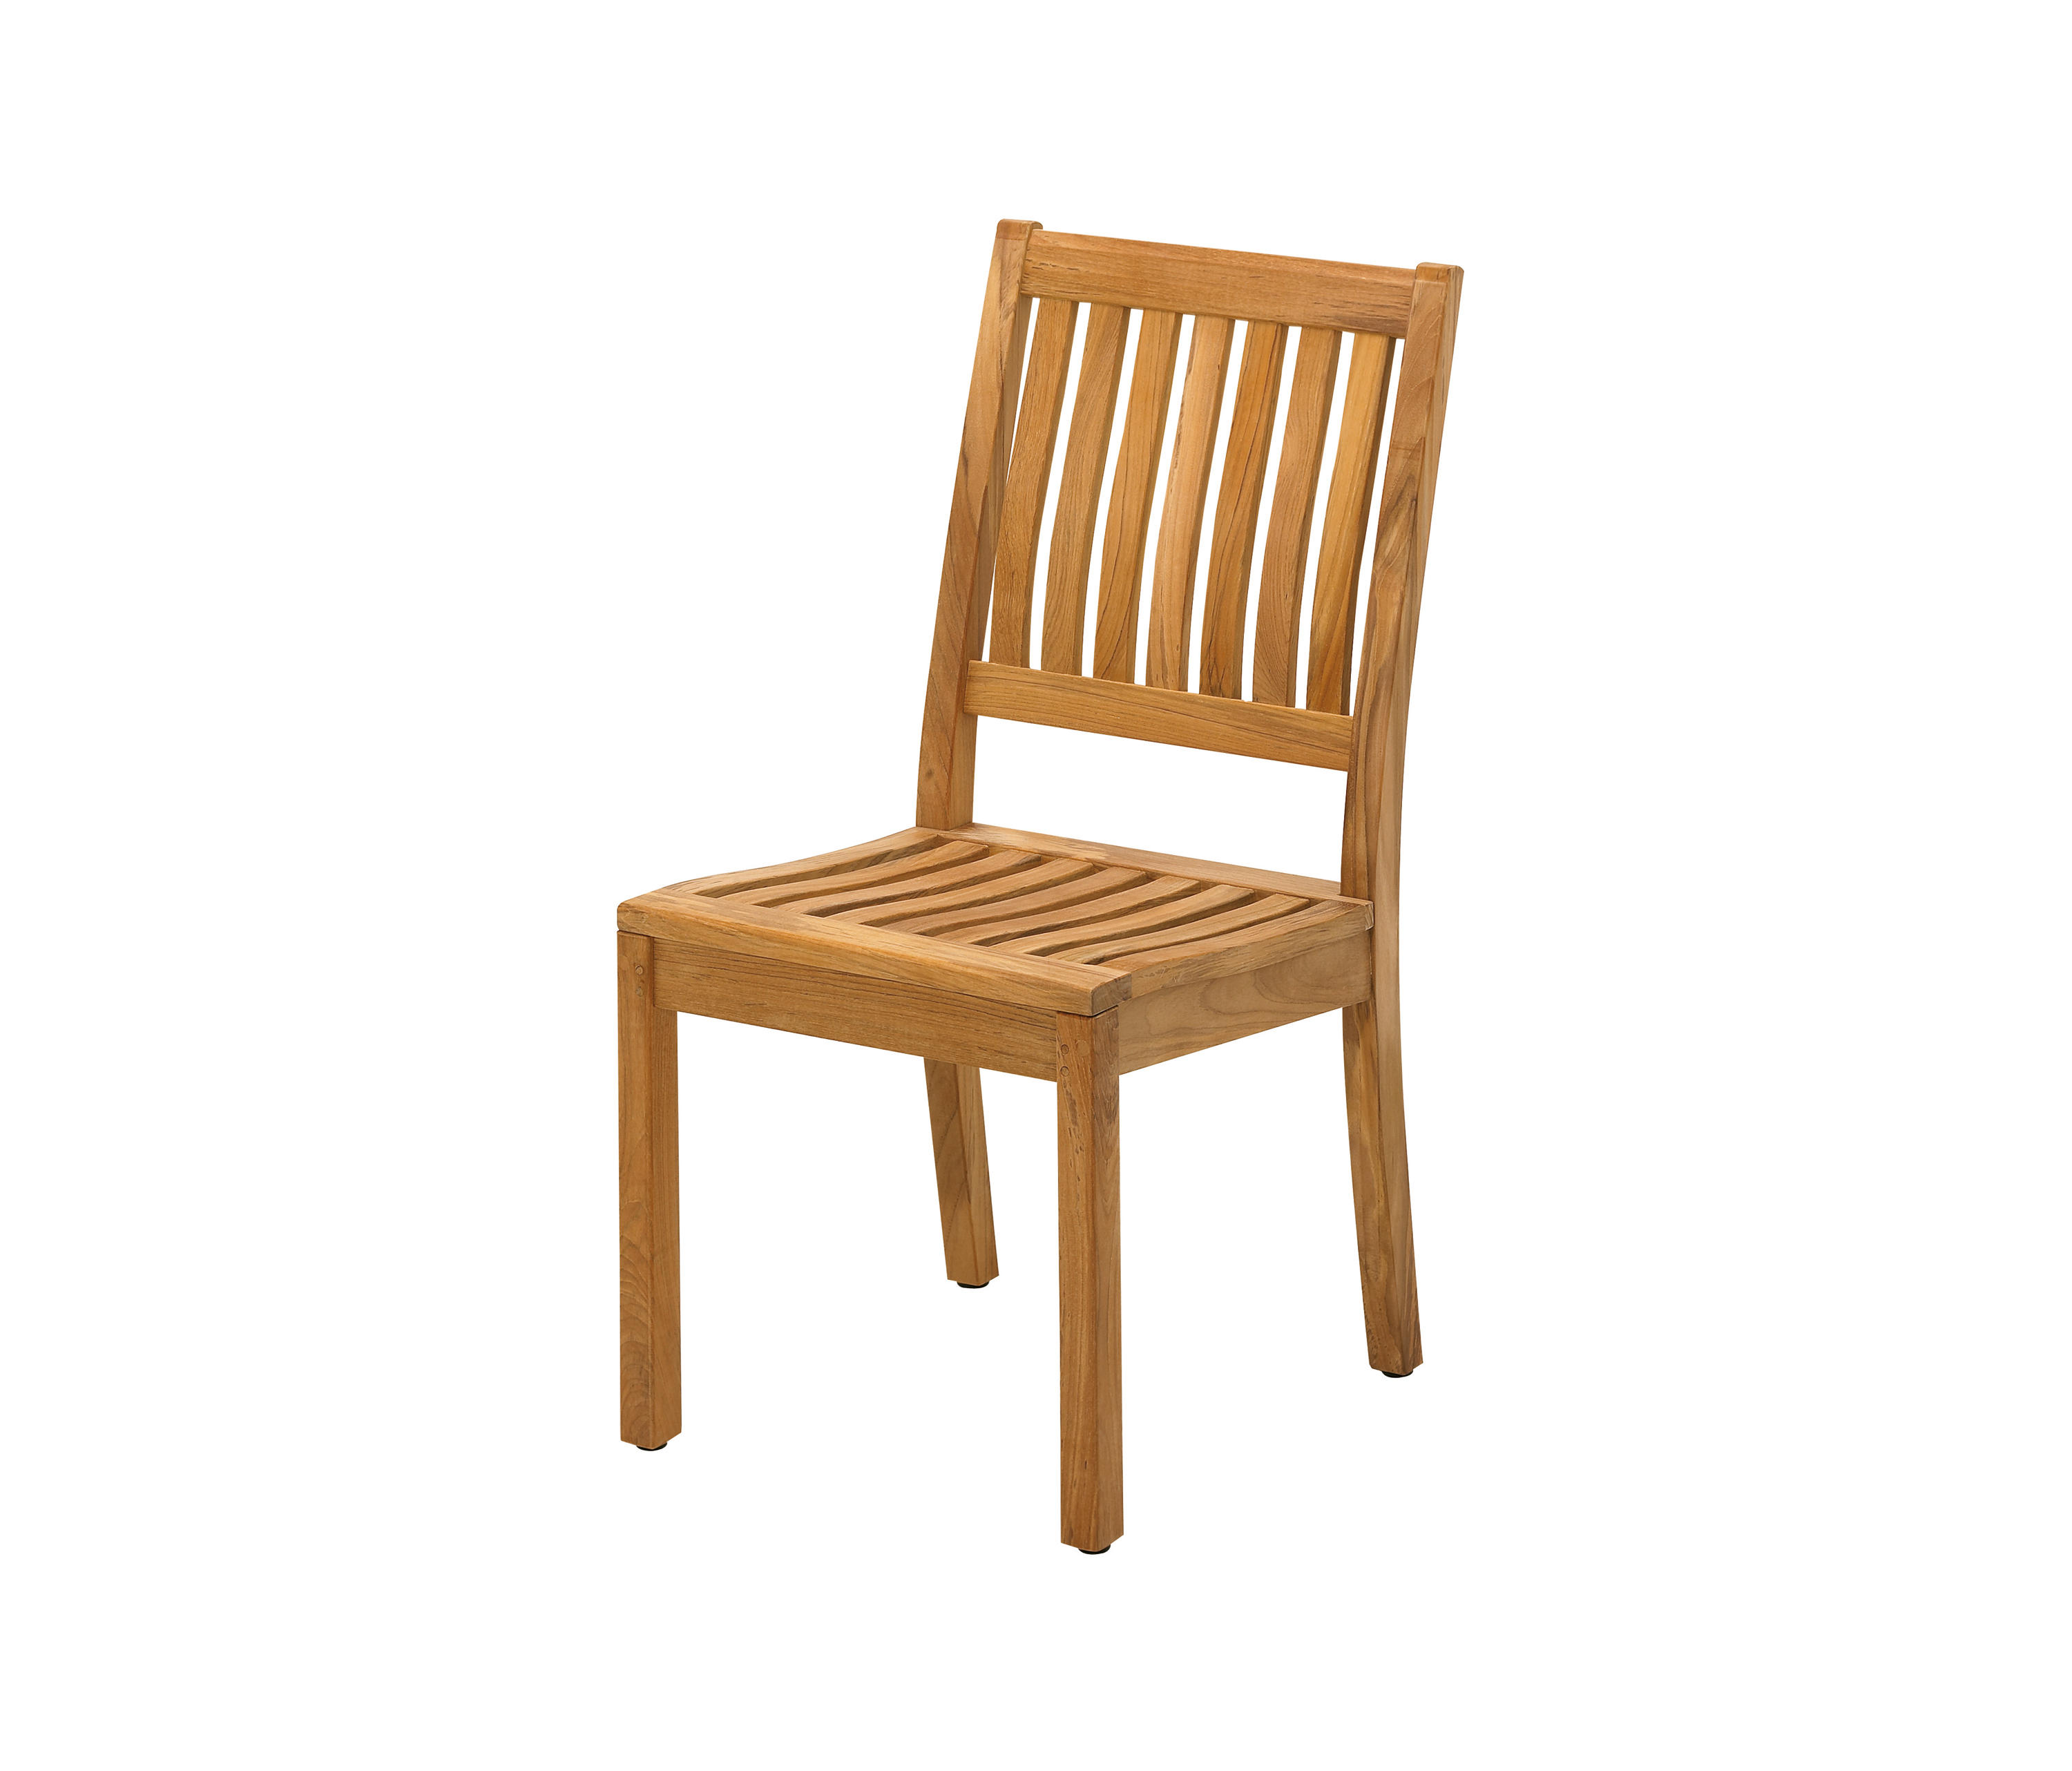 Kingston dining chair garden chairs from gloster for Furniture kingston